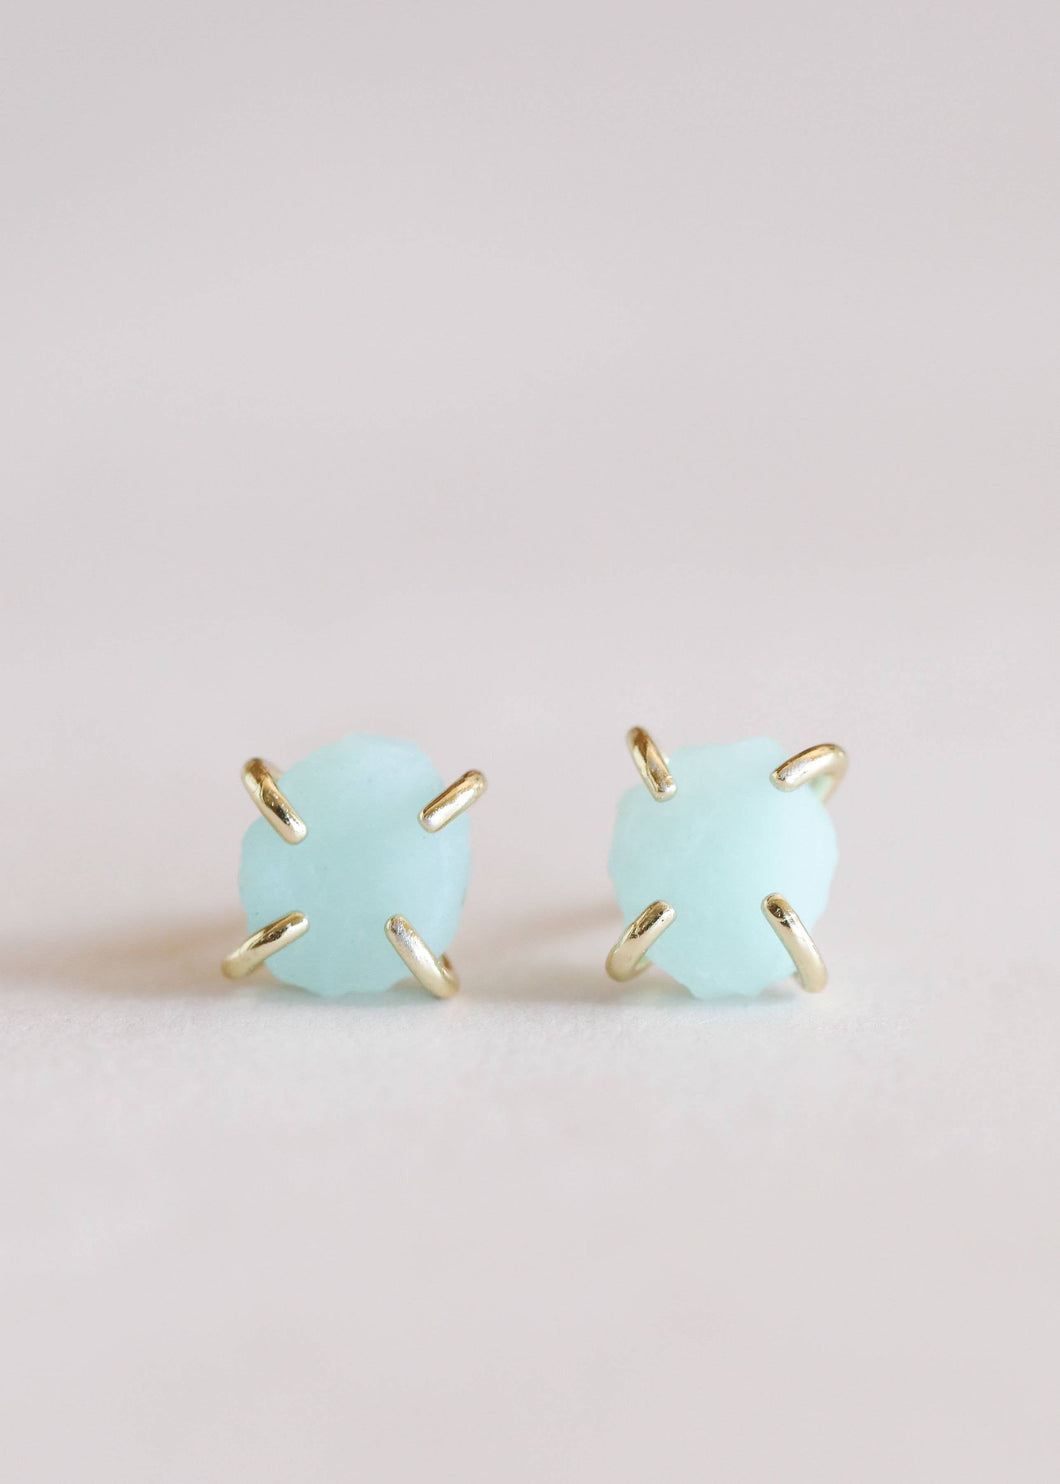 JaxKelly - Amazonite Gemstone Prong Earrings